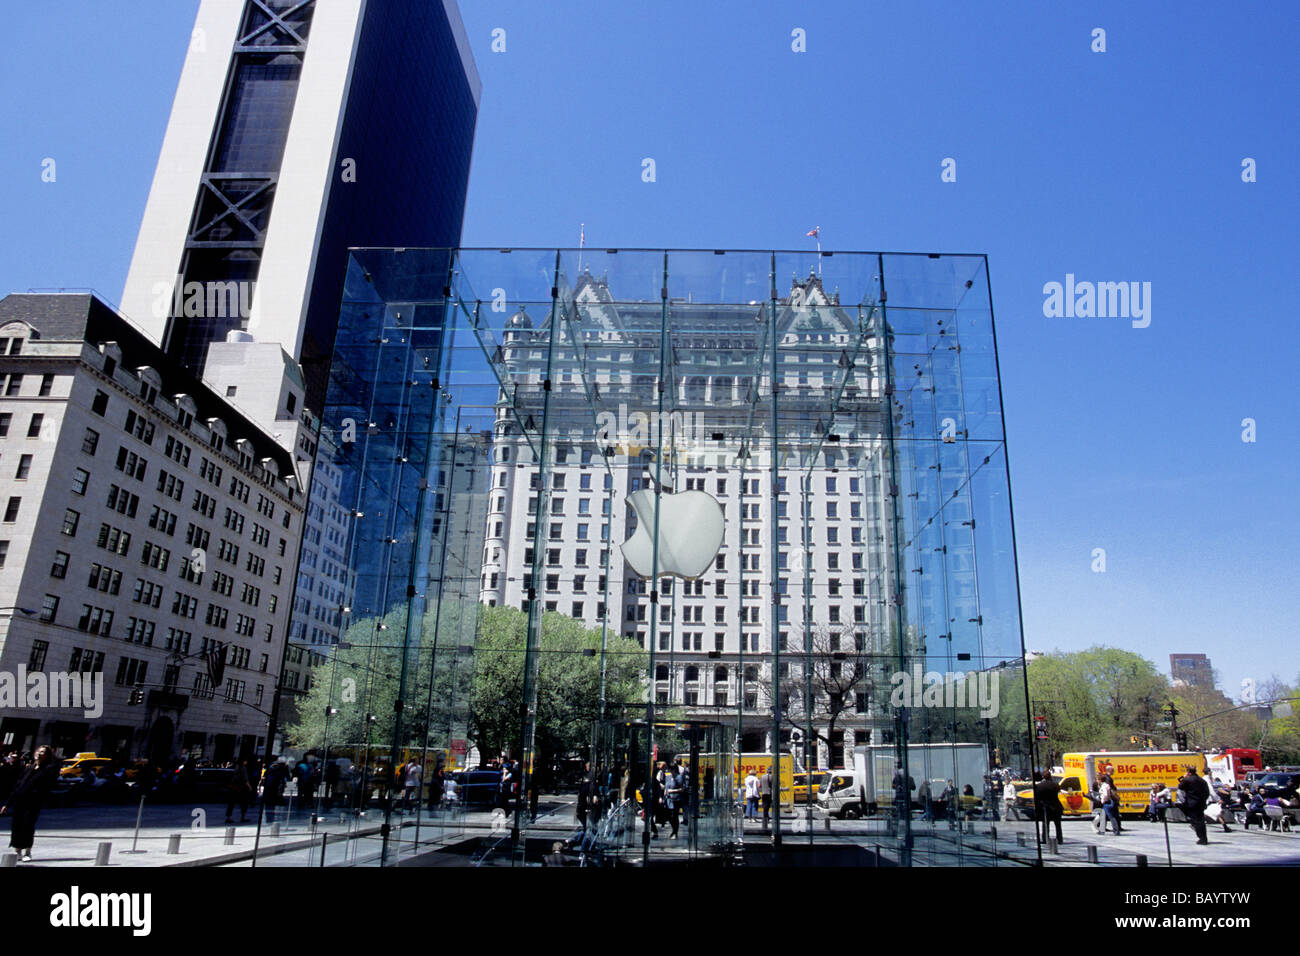 new york city fifth avenue the apple store and the plaza hotel nyc stock photo royalty free. Black Bedroom Furniture Sets. Home Design Ideas